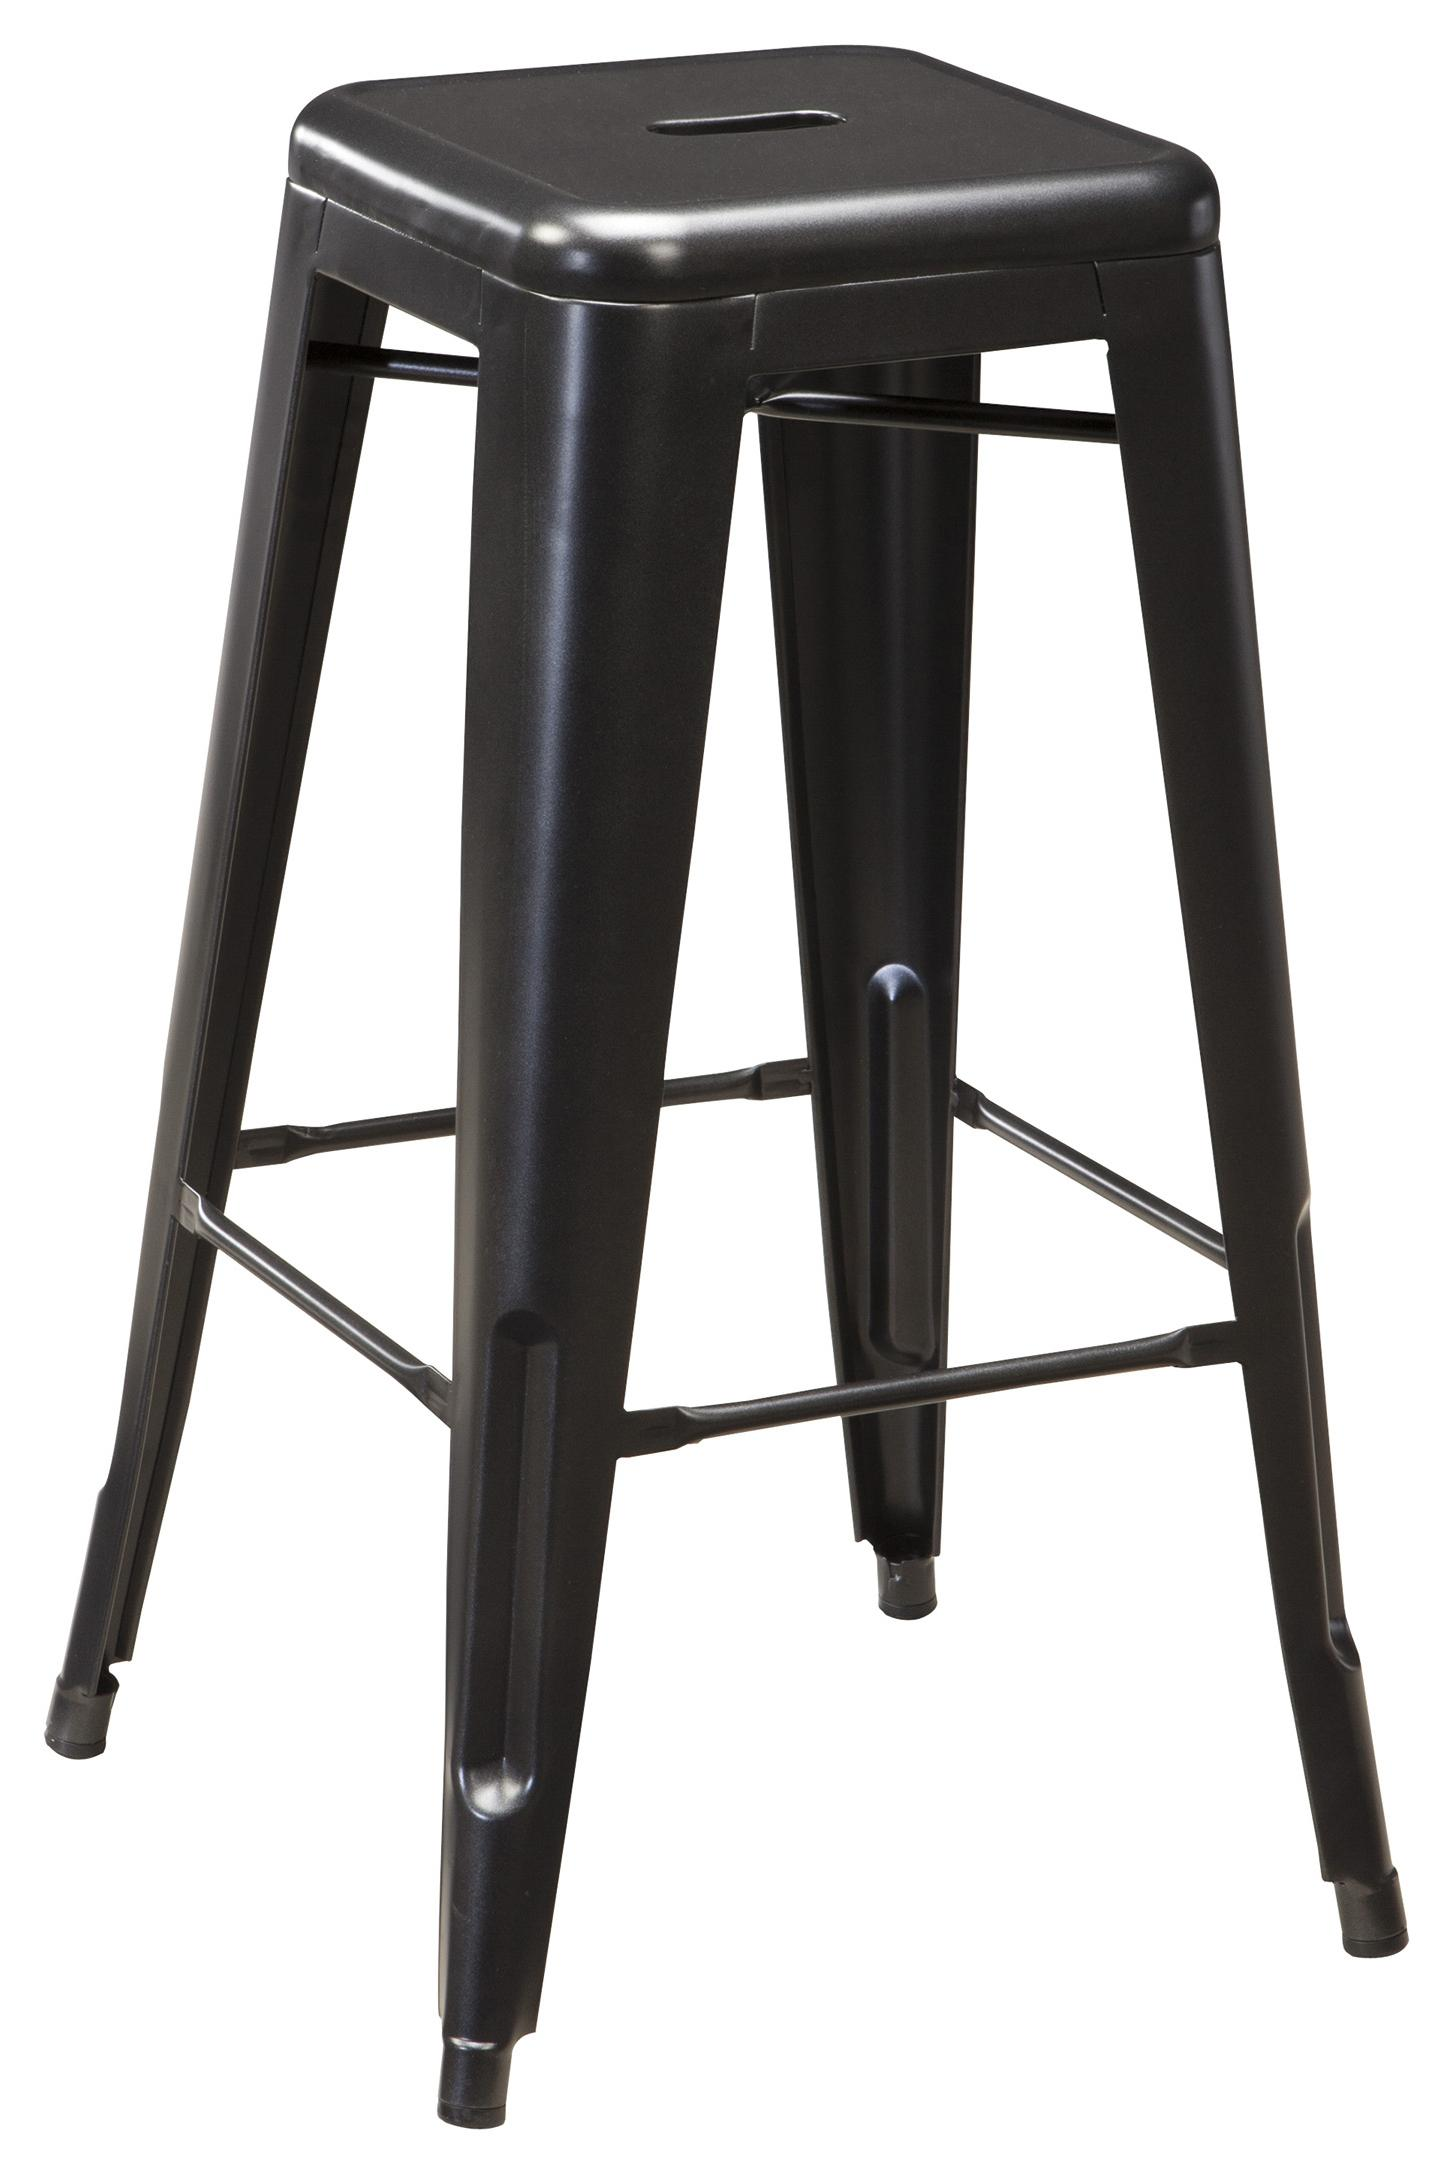 Signature Design by Ashley Pinnadel Tall Stool - Item Number: D542-030